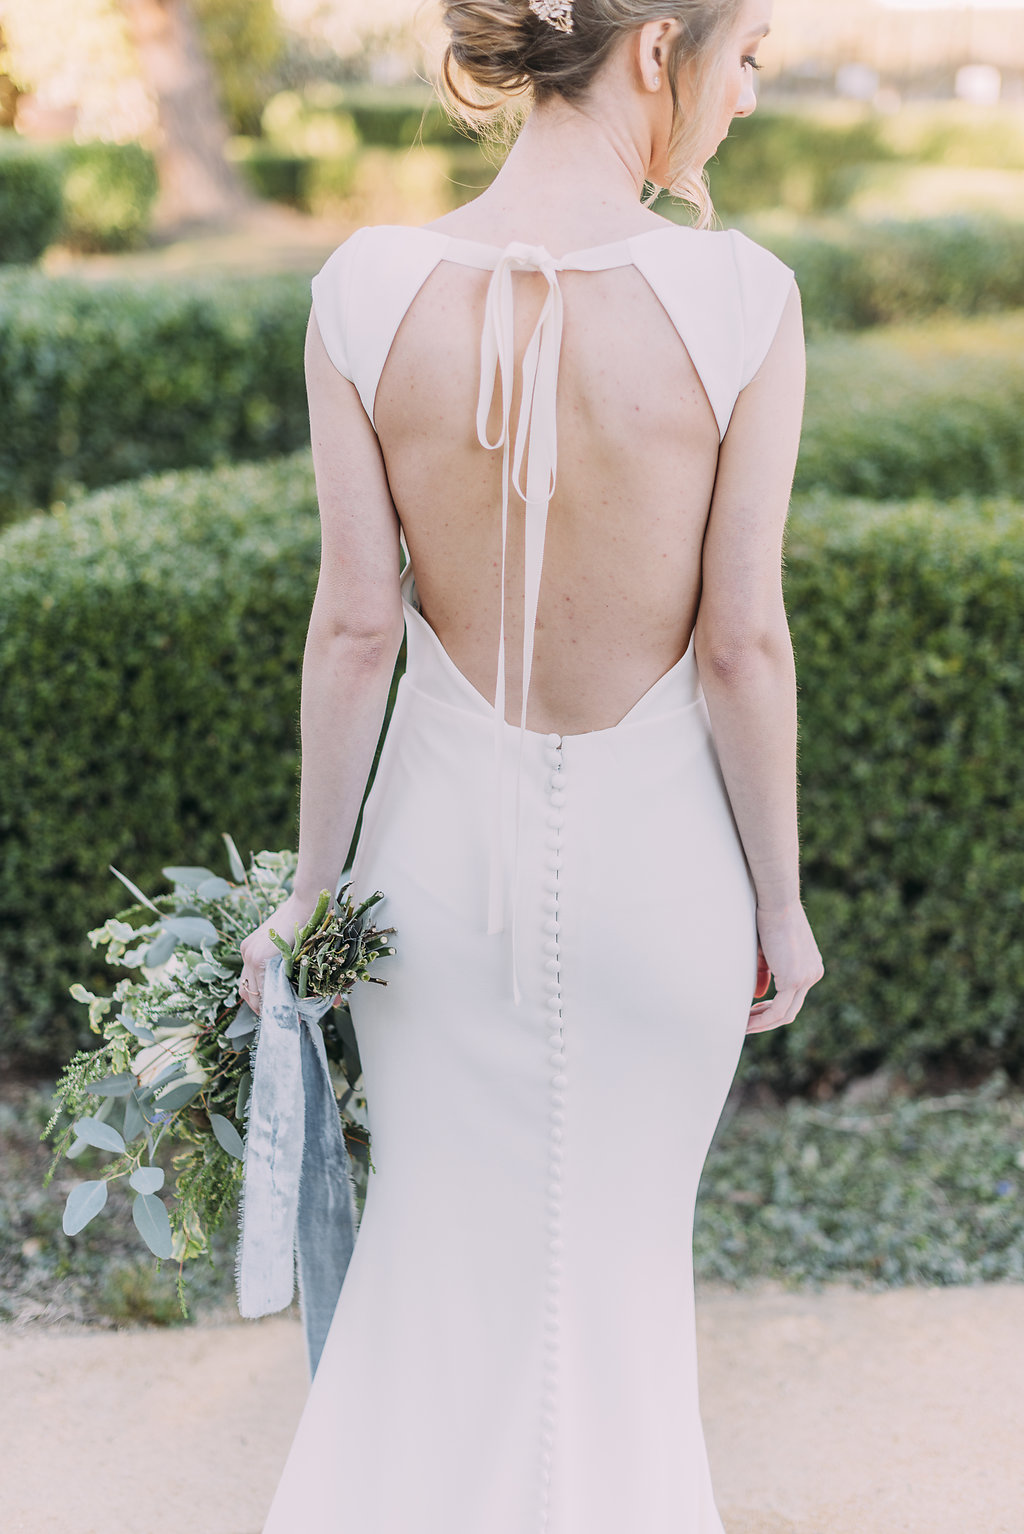 bridal dress with gorgeous back details and pretty bridal bouquet with white and green silk ribbons